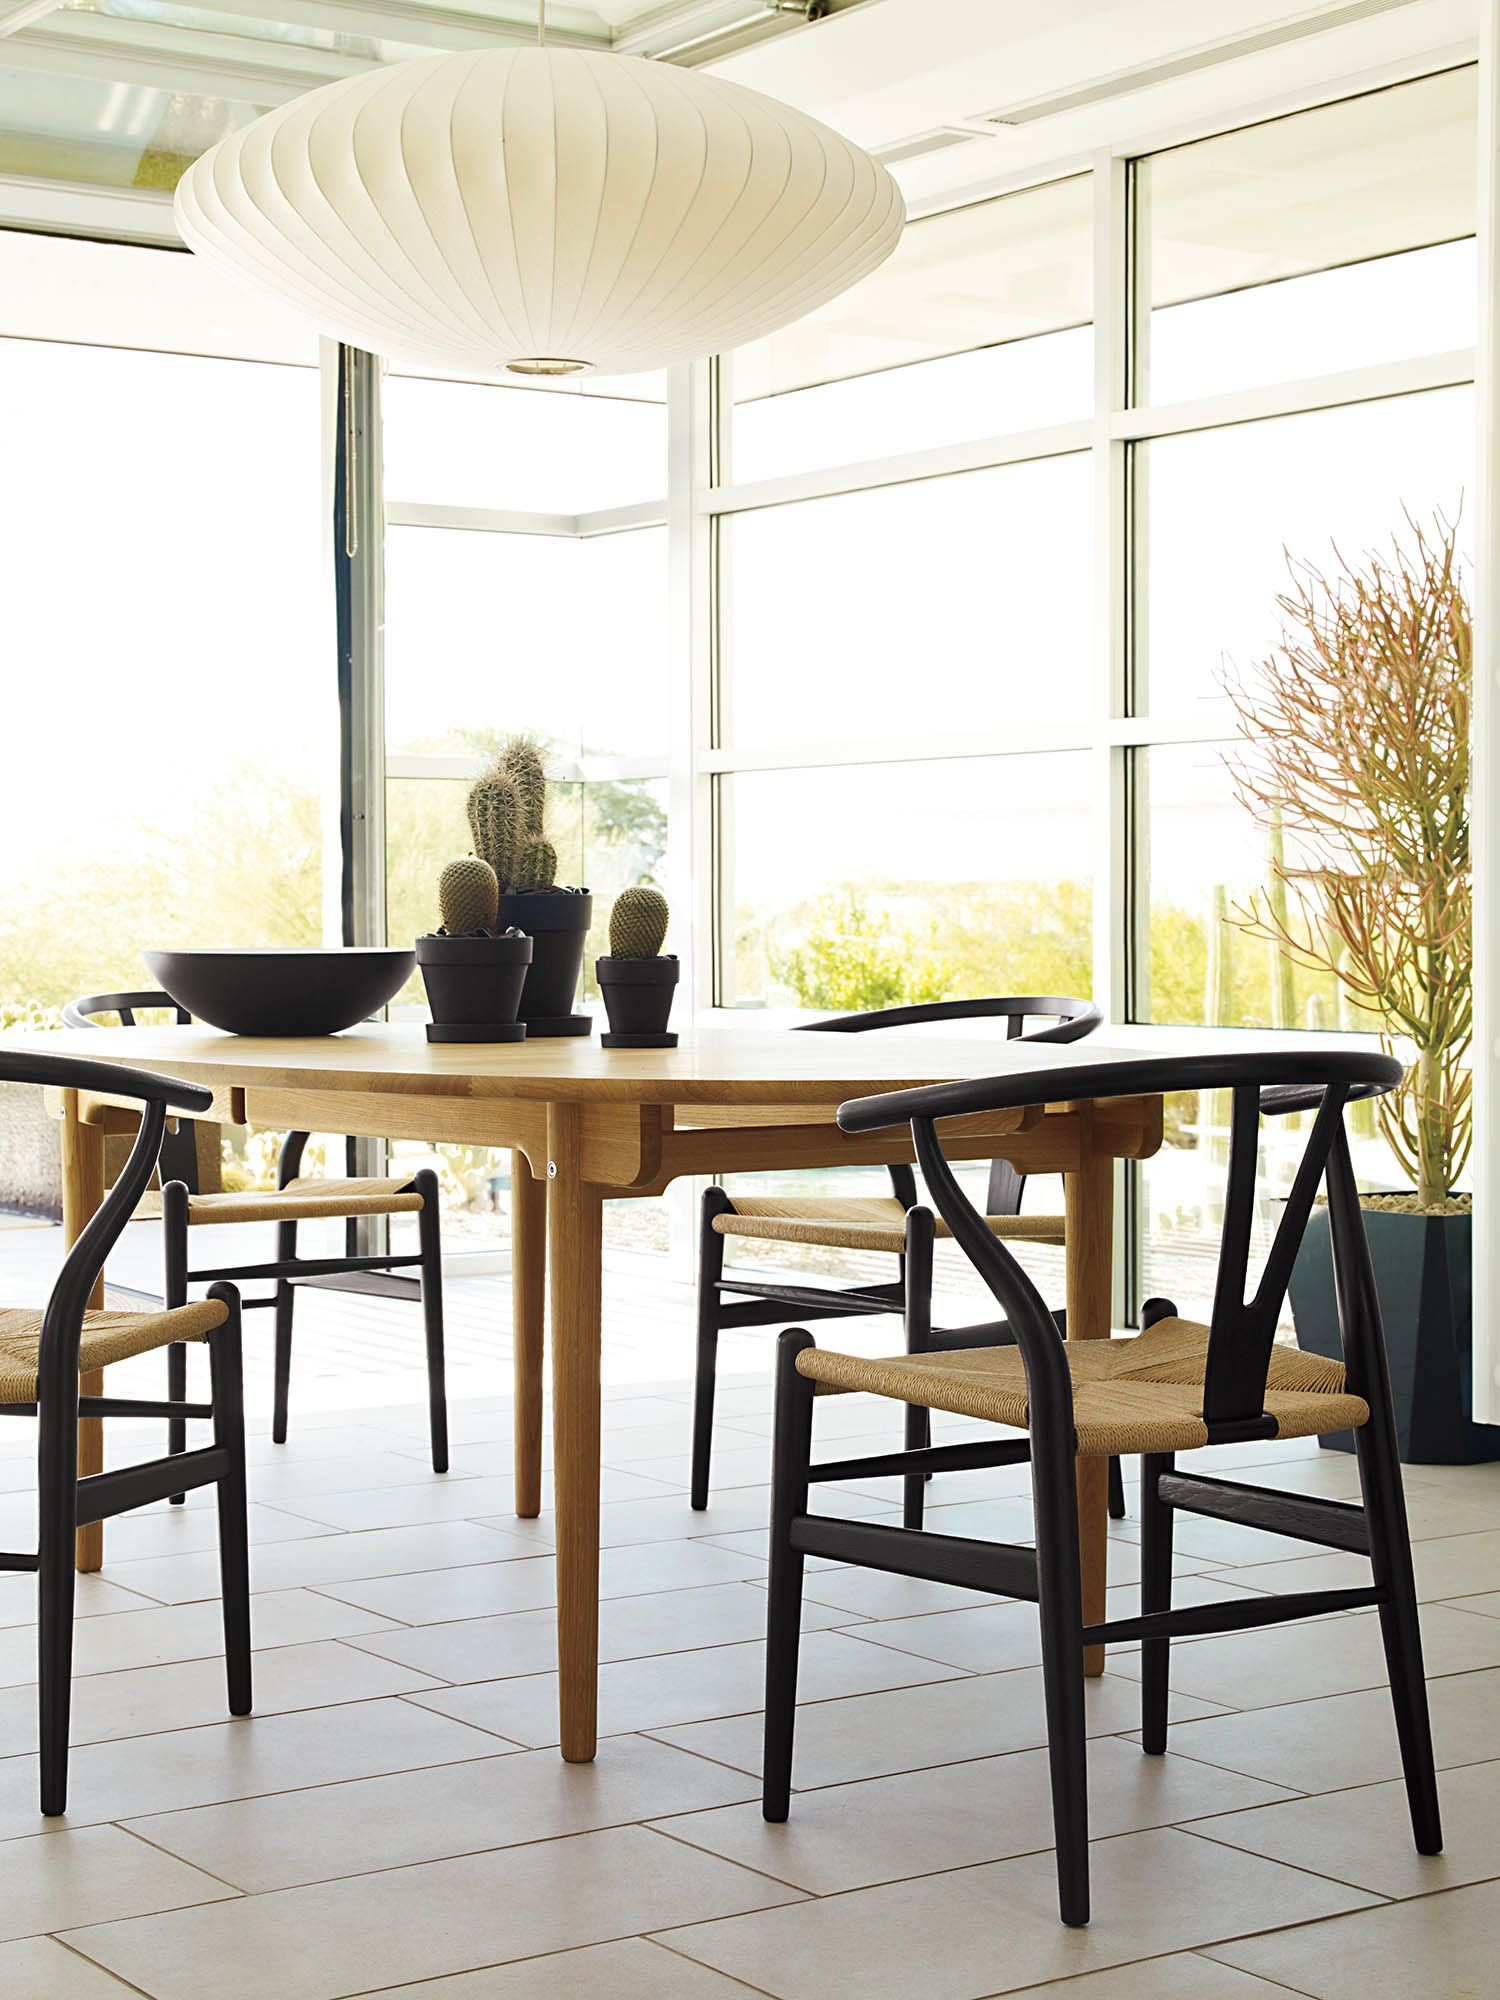 Wishbone Chairs Wishbone Chair Furniture Contemporary Office Chairs Dining